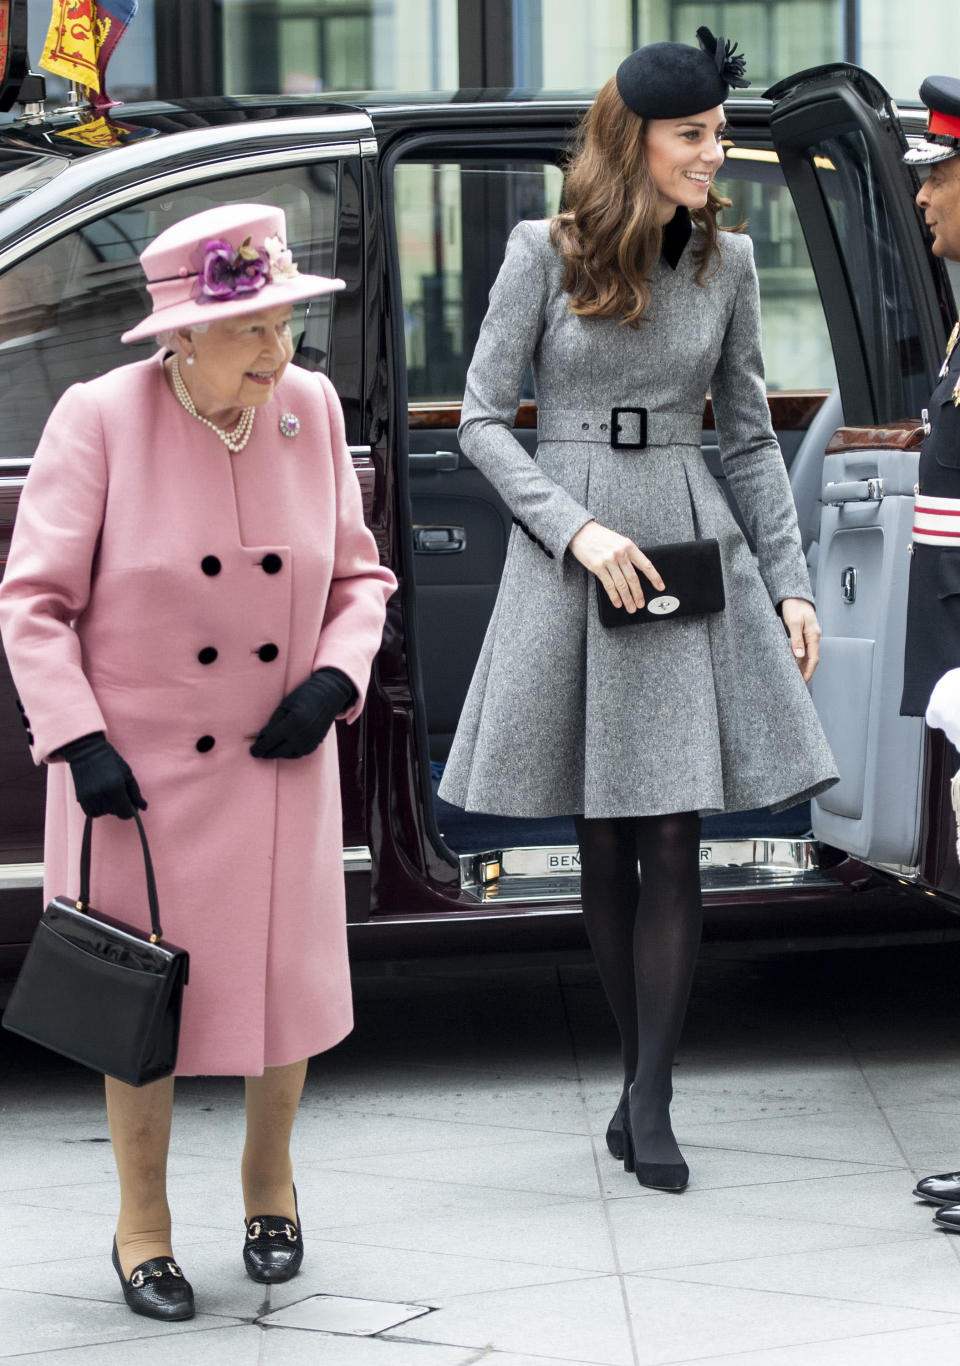 The Queen and the Duchess of Cambridge arrive at King's College London [Photo: Getty]